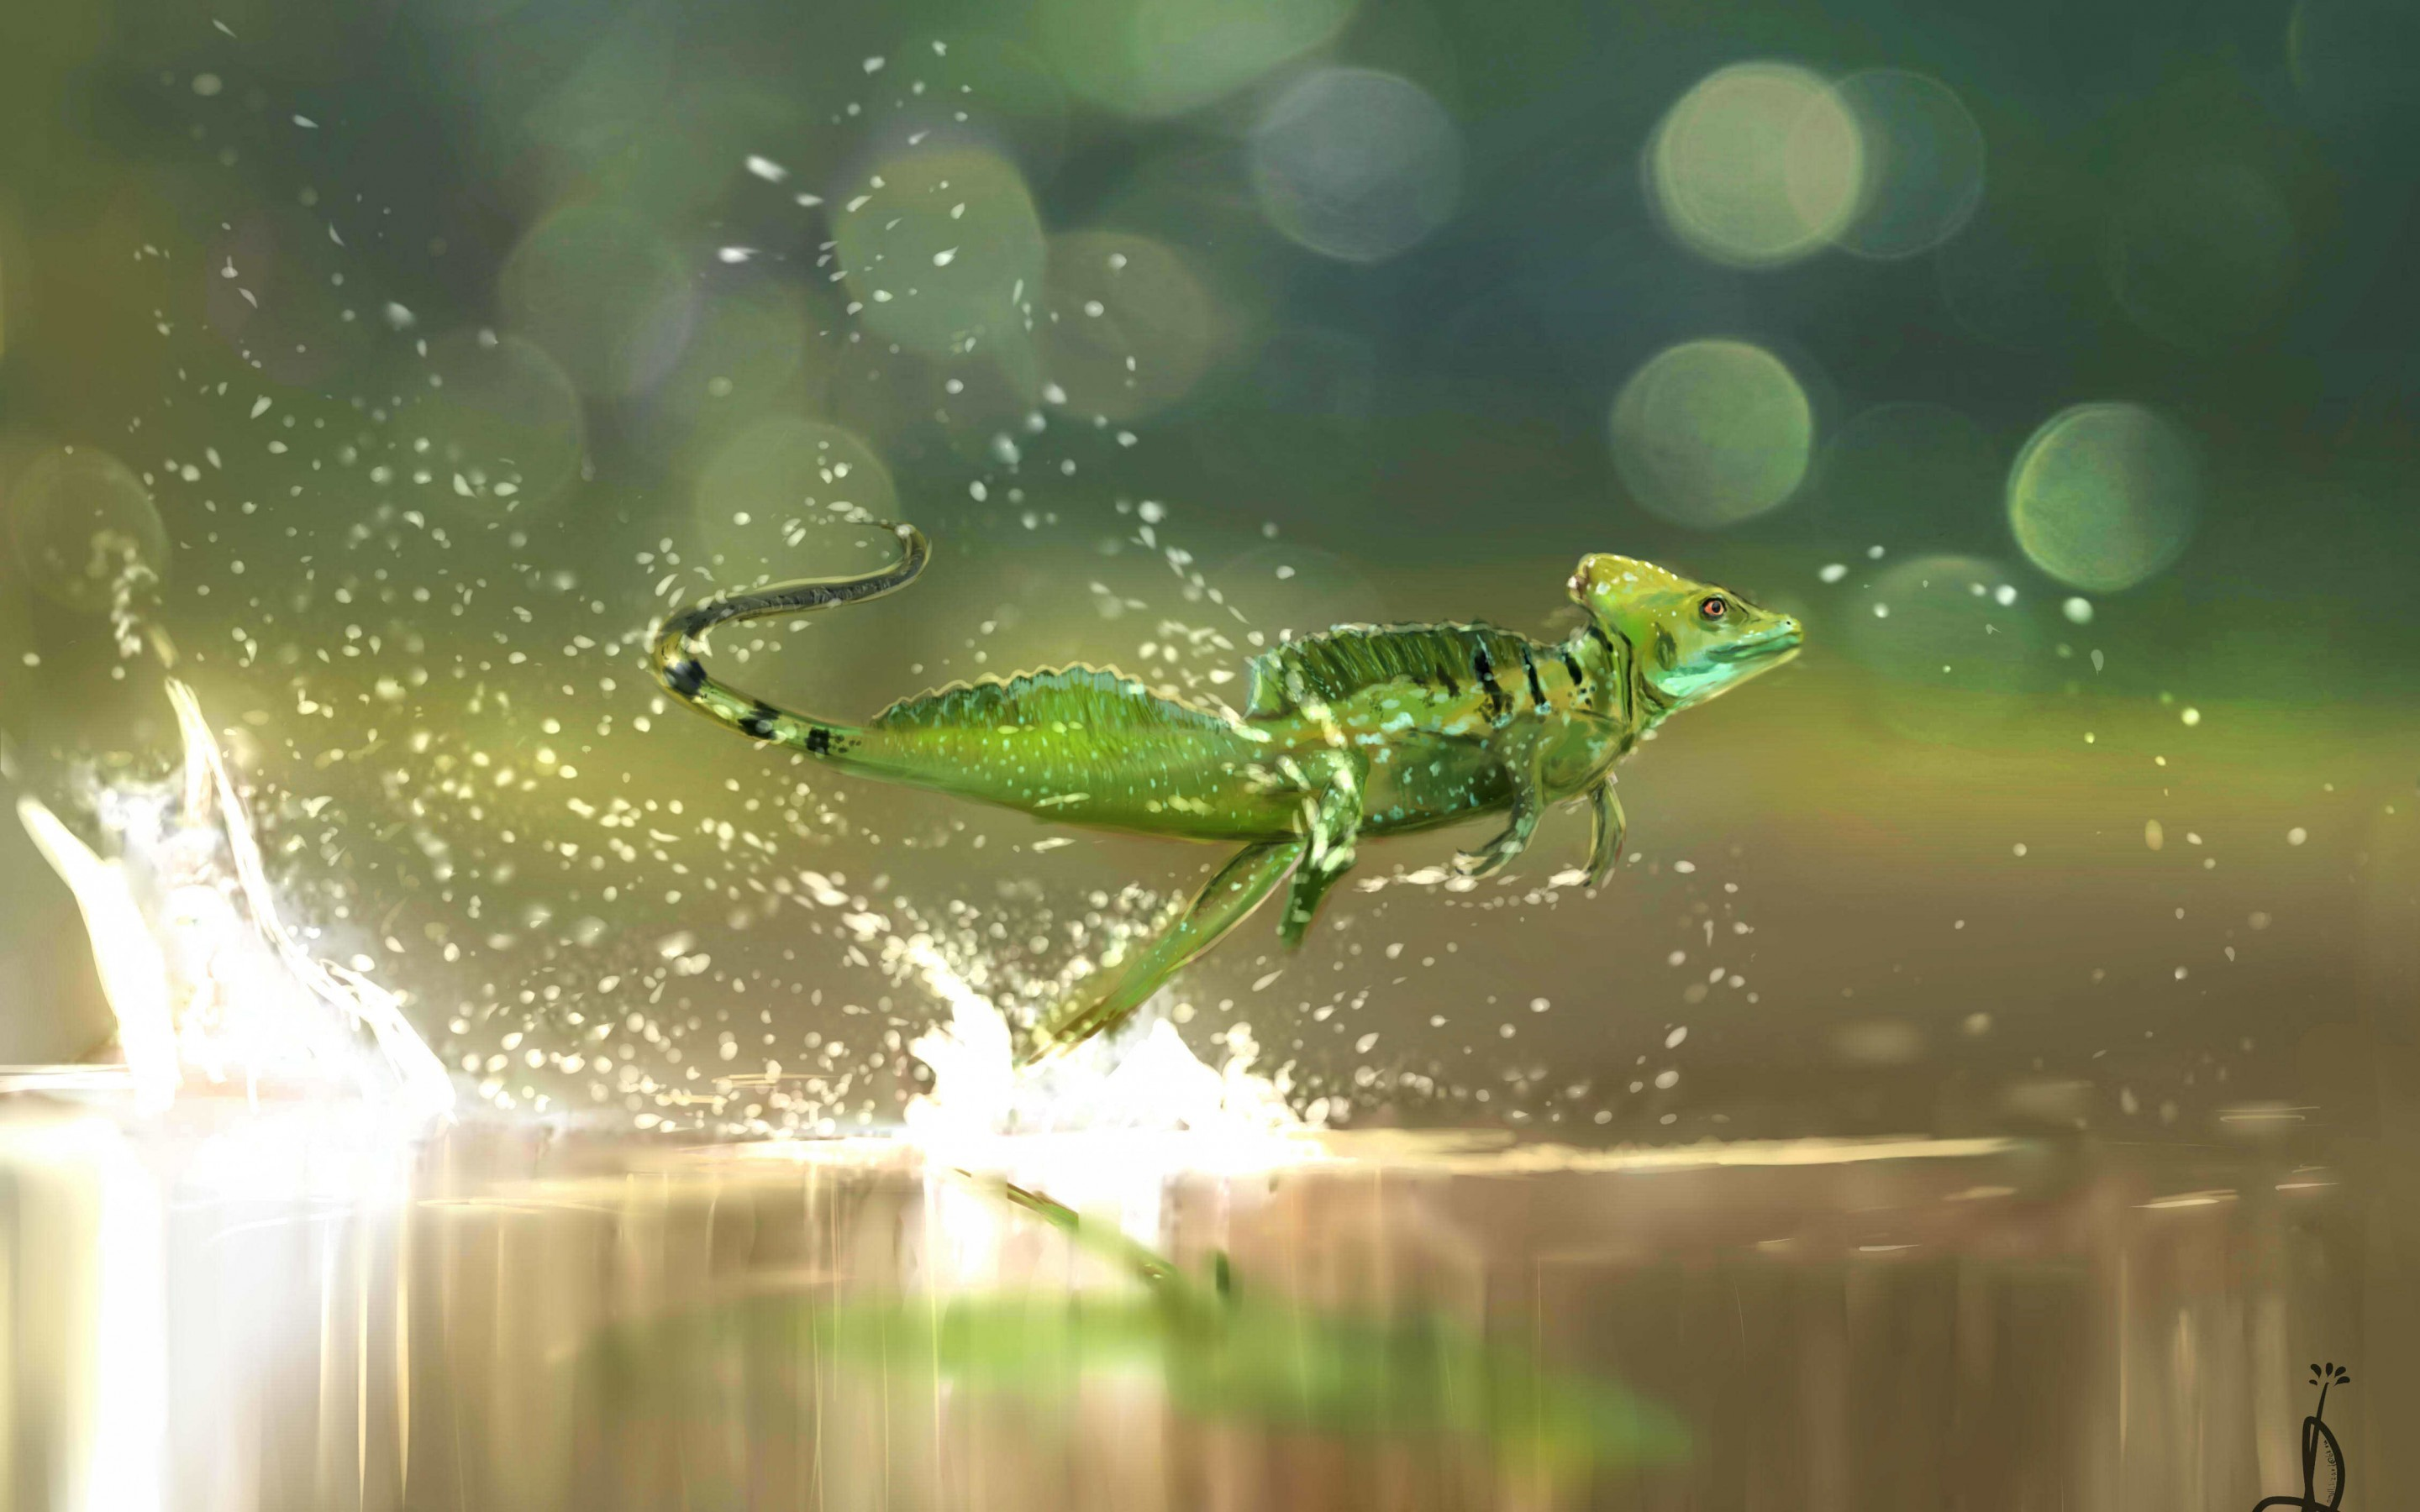 Res: 2880x1800, V.1.7 497.3 Kbytes | Lizard on the water | big type